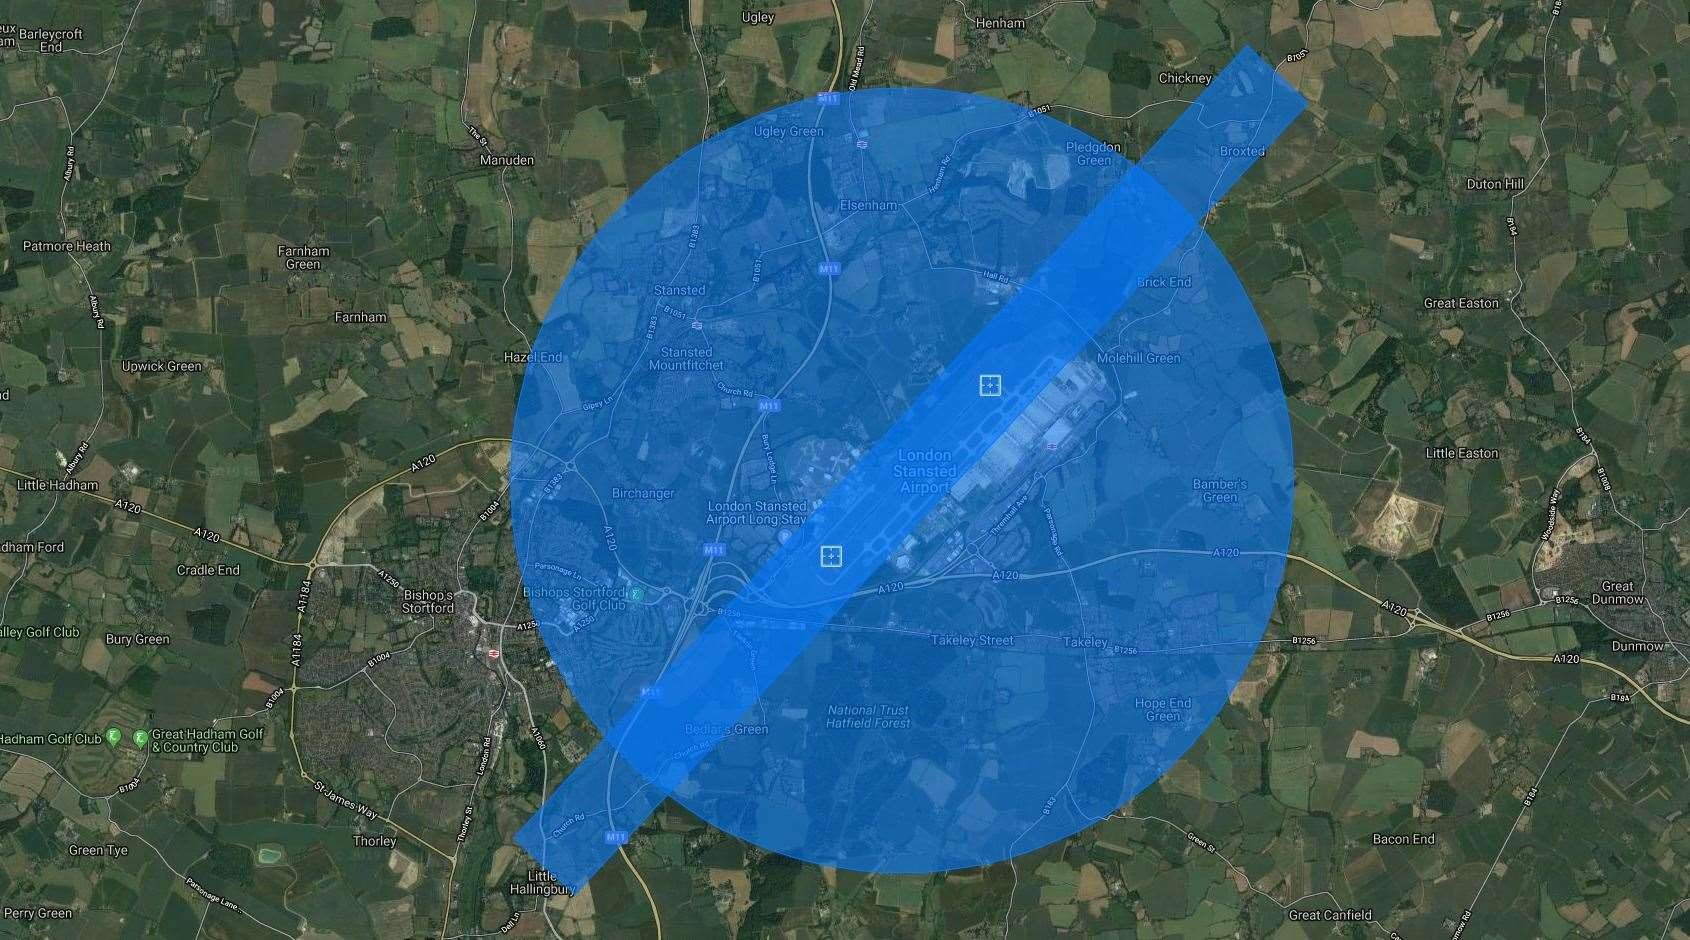 Stansted Airport's no-fly zone for drones (7748010)